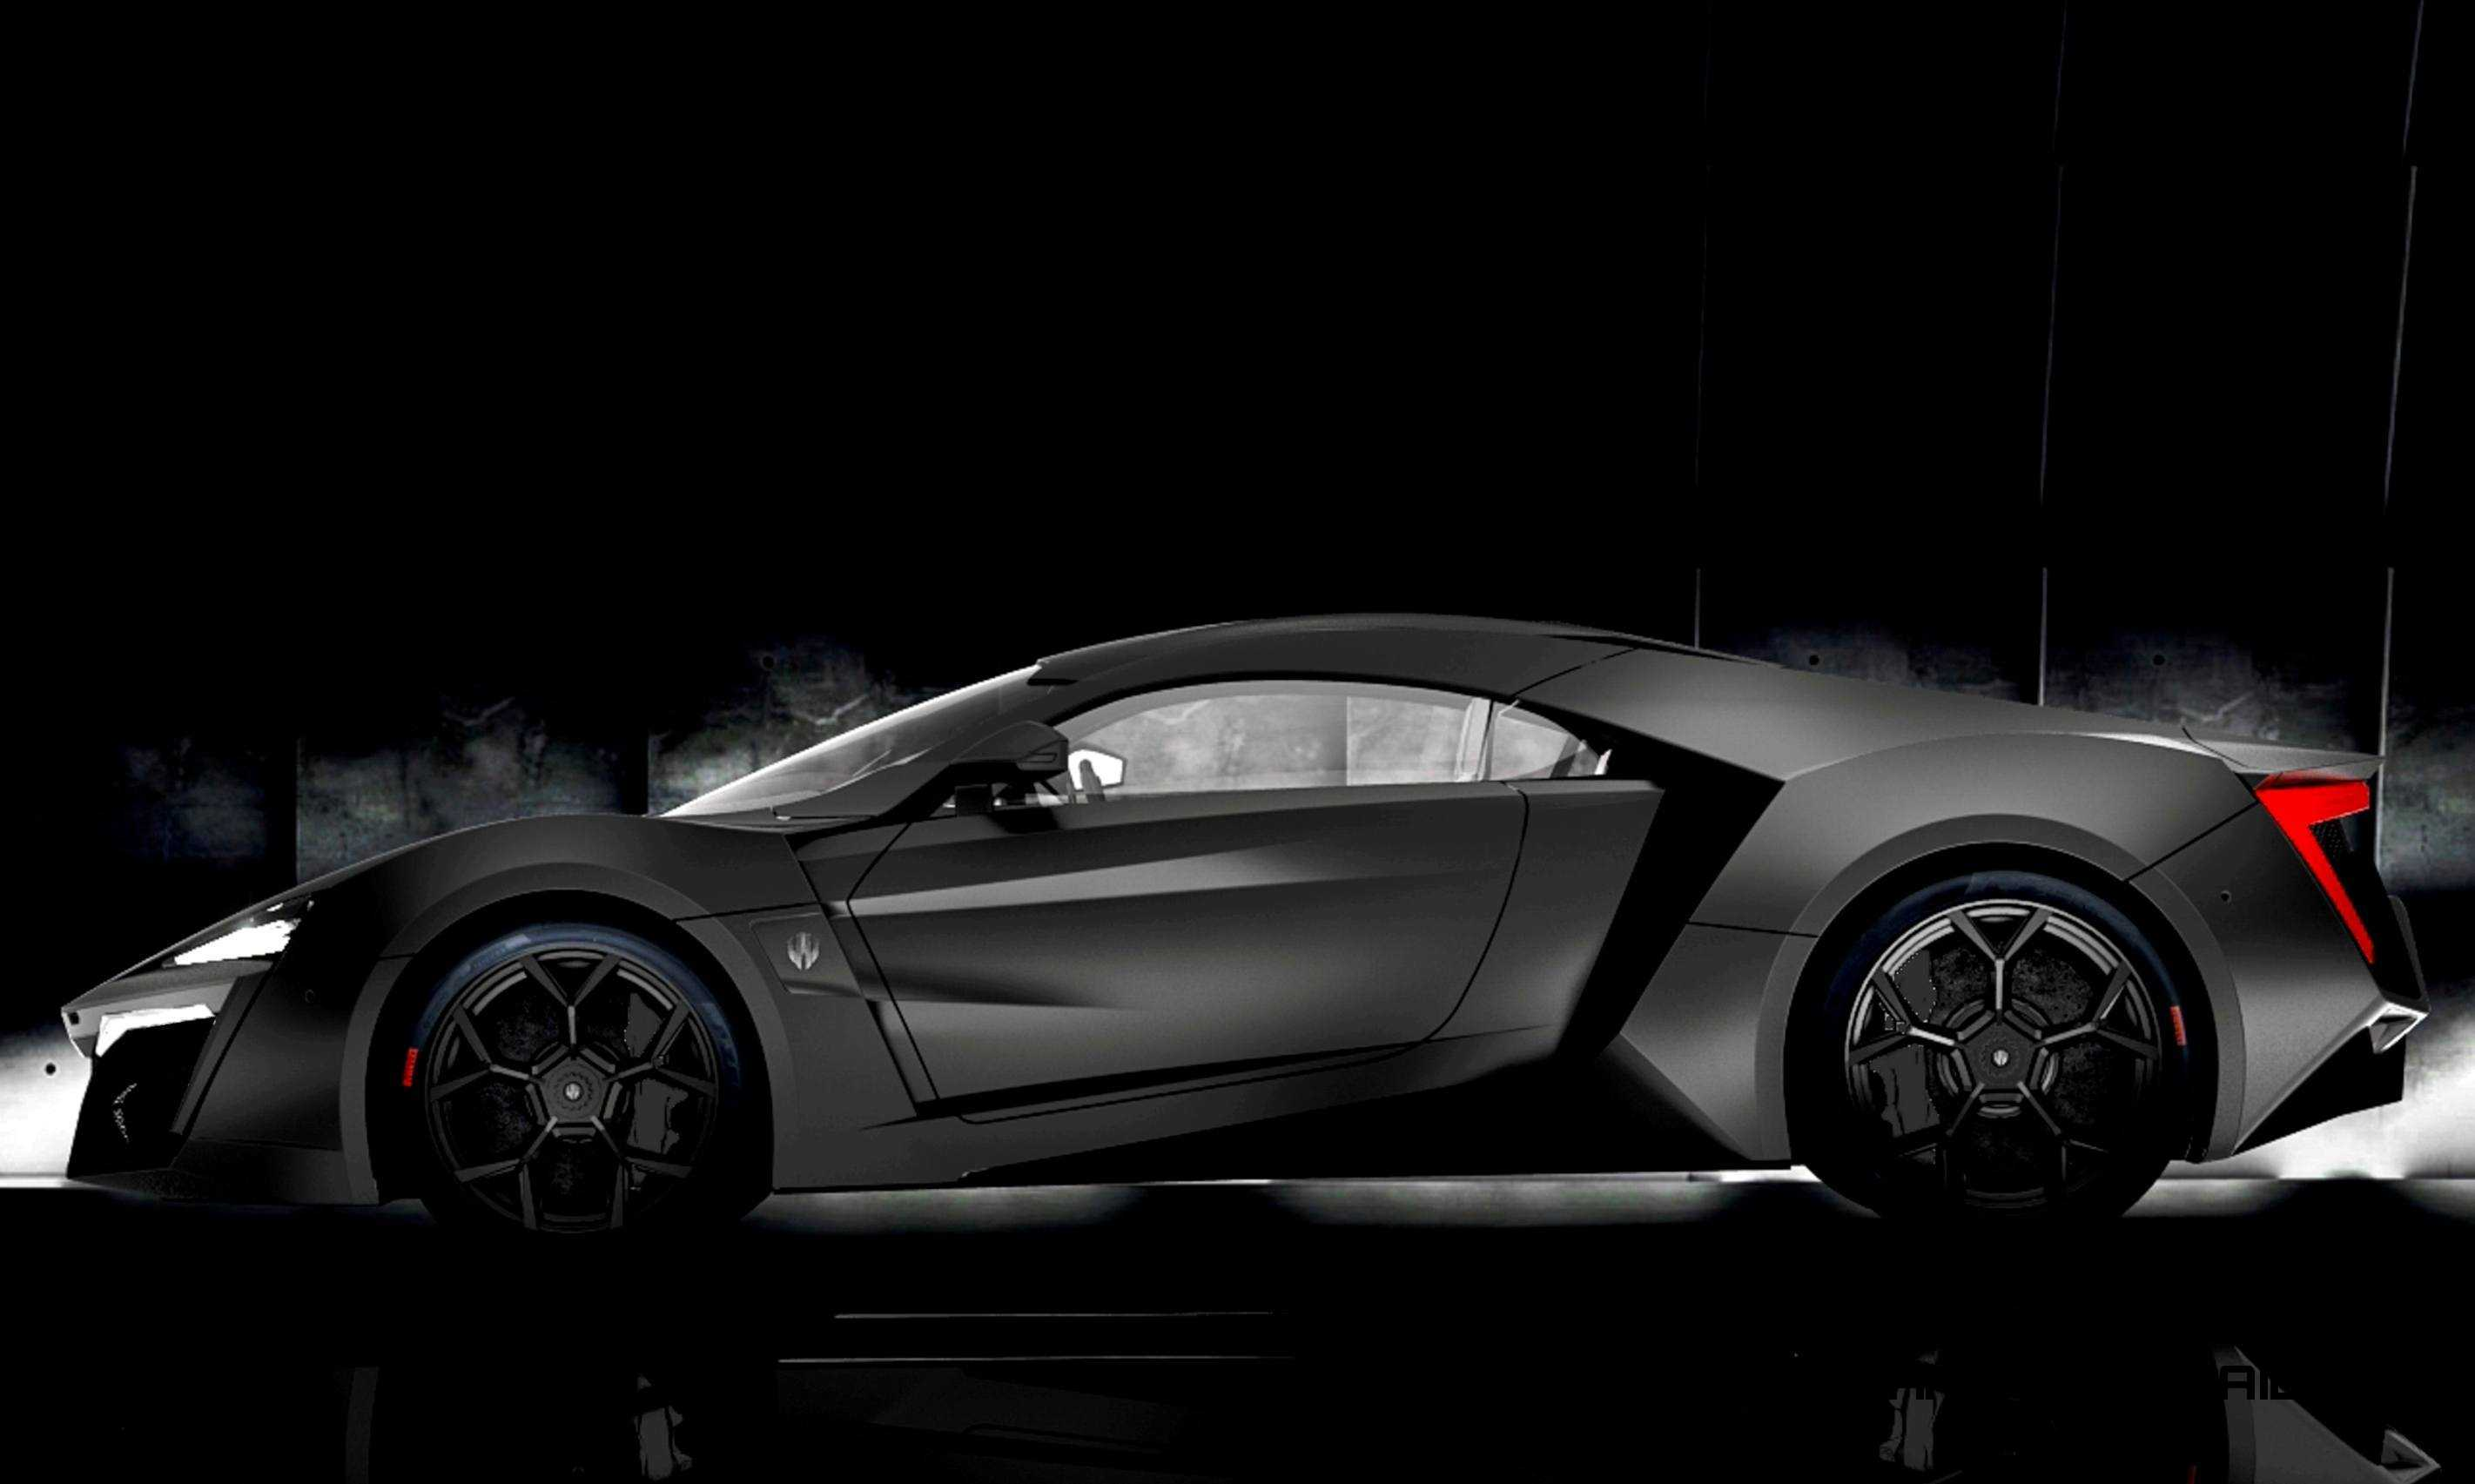 Lykan Hypersport Black Wallpaper Hd 2843x1705 Wallpaper Teahub Io